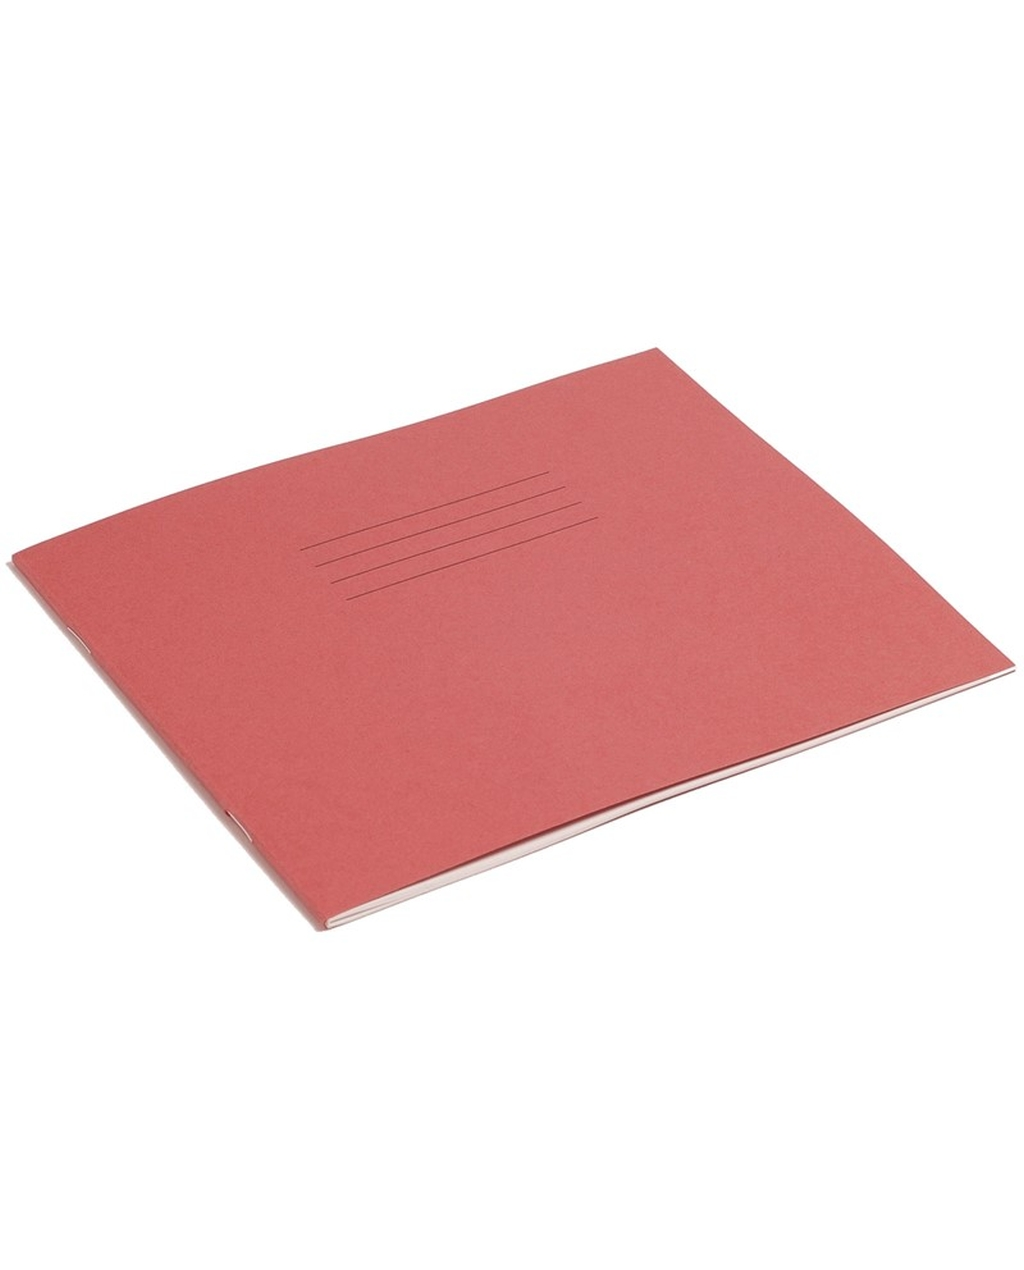 Exercise Book 6.25 x 8 (160 x 203mm) Red Cover 6mm Blue Ruled Centred On 21mm Red Ruled 32 Pages